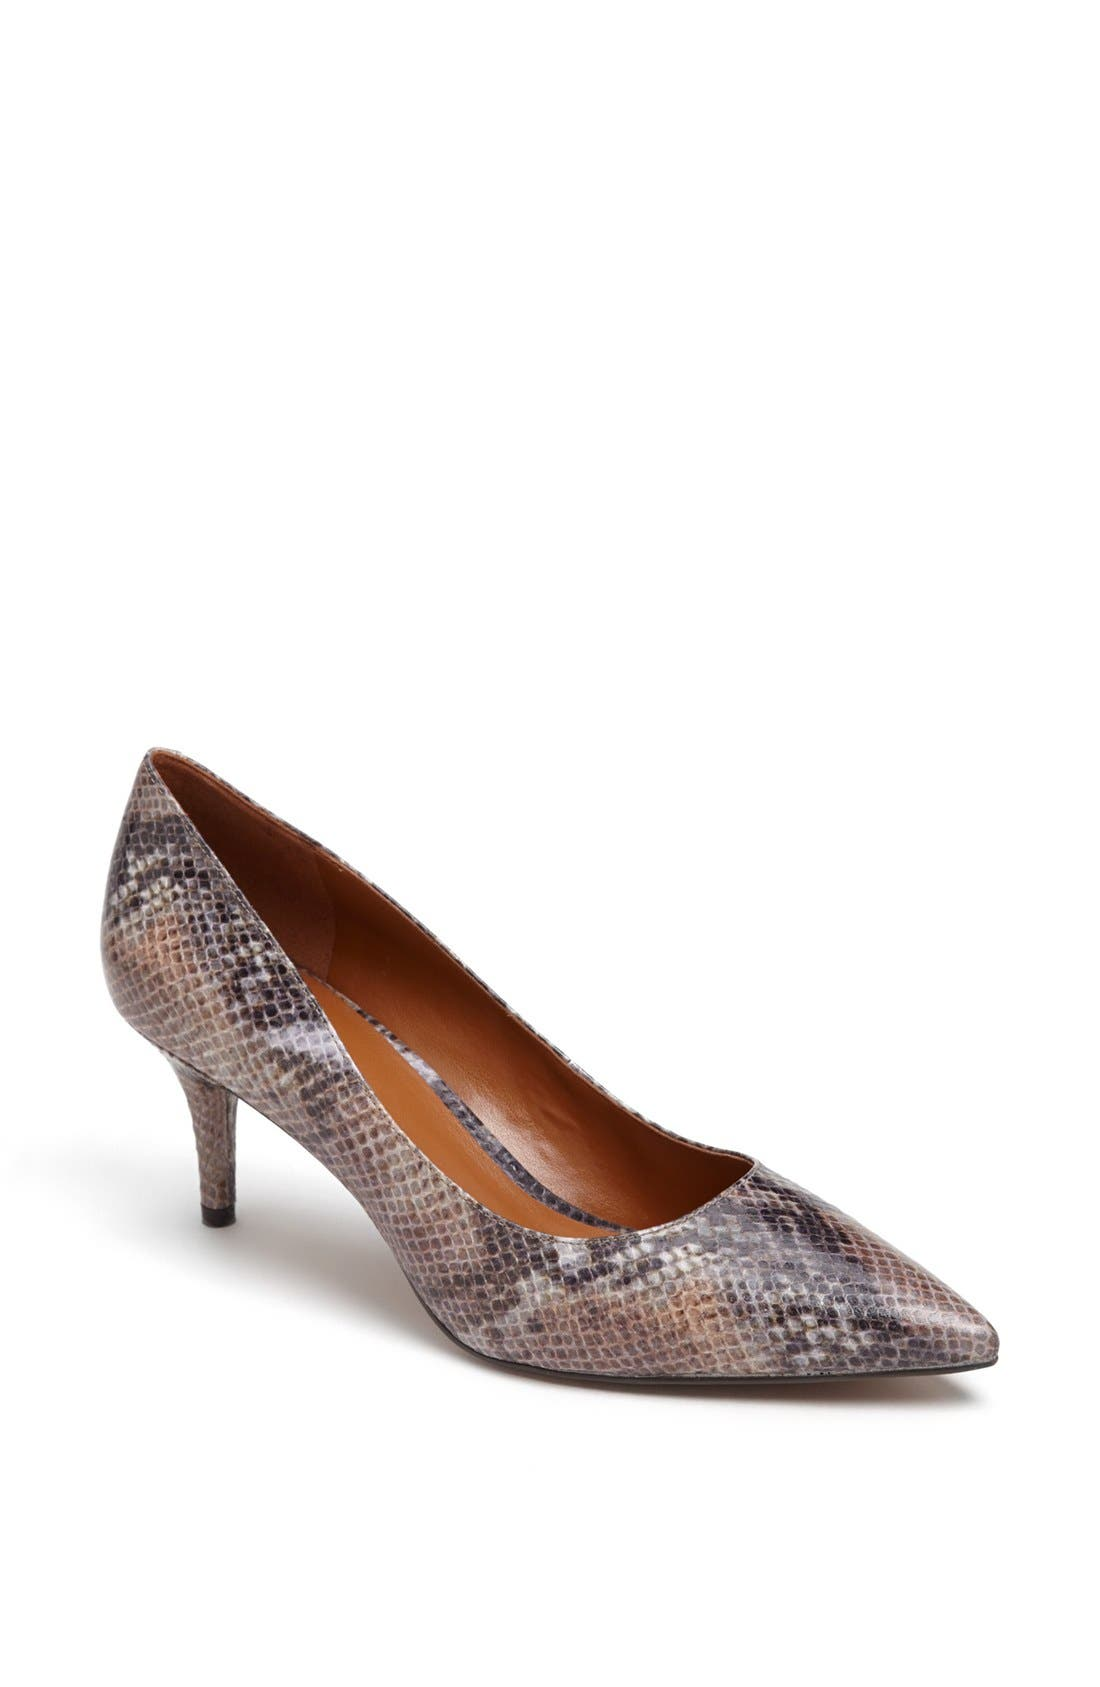 Alternate Image 1 Selected - Nine West 'Margot' Pointy Toe Pump